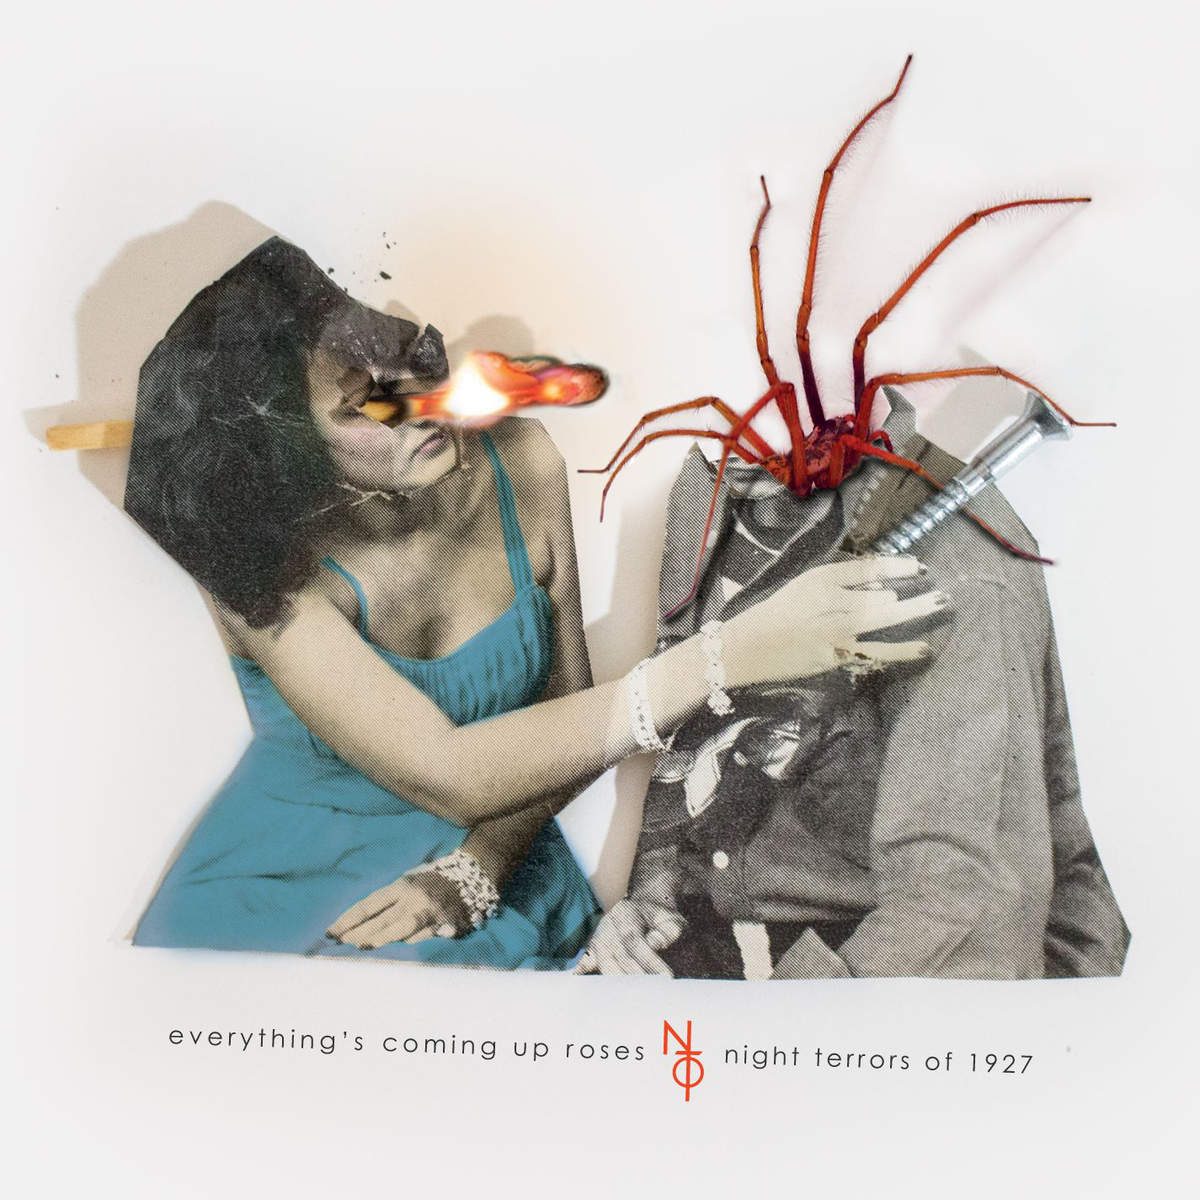 Night-Terrors-of-1927-Everythings-Coming-Up-Roses-2015-1200x1200.png